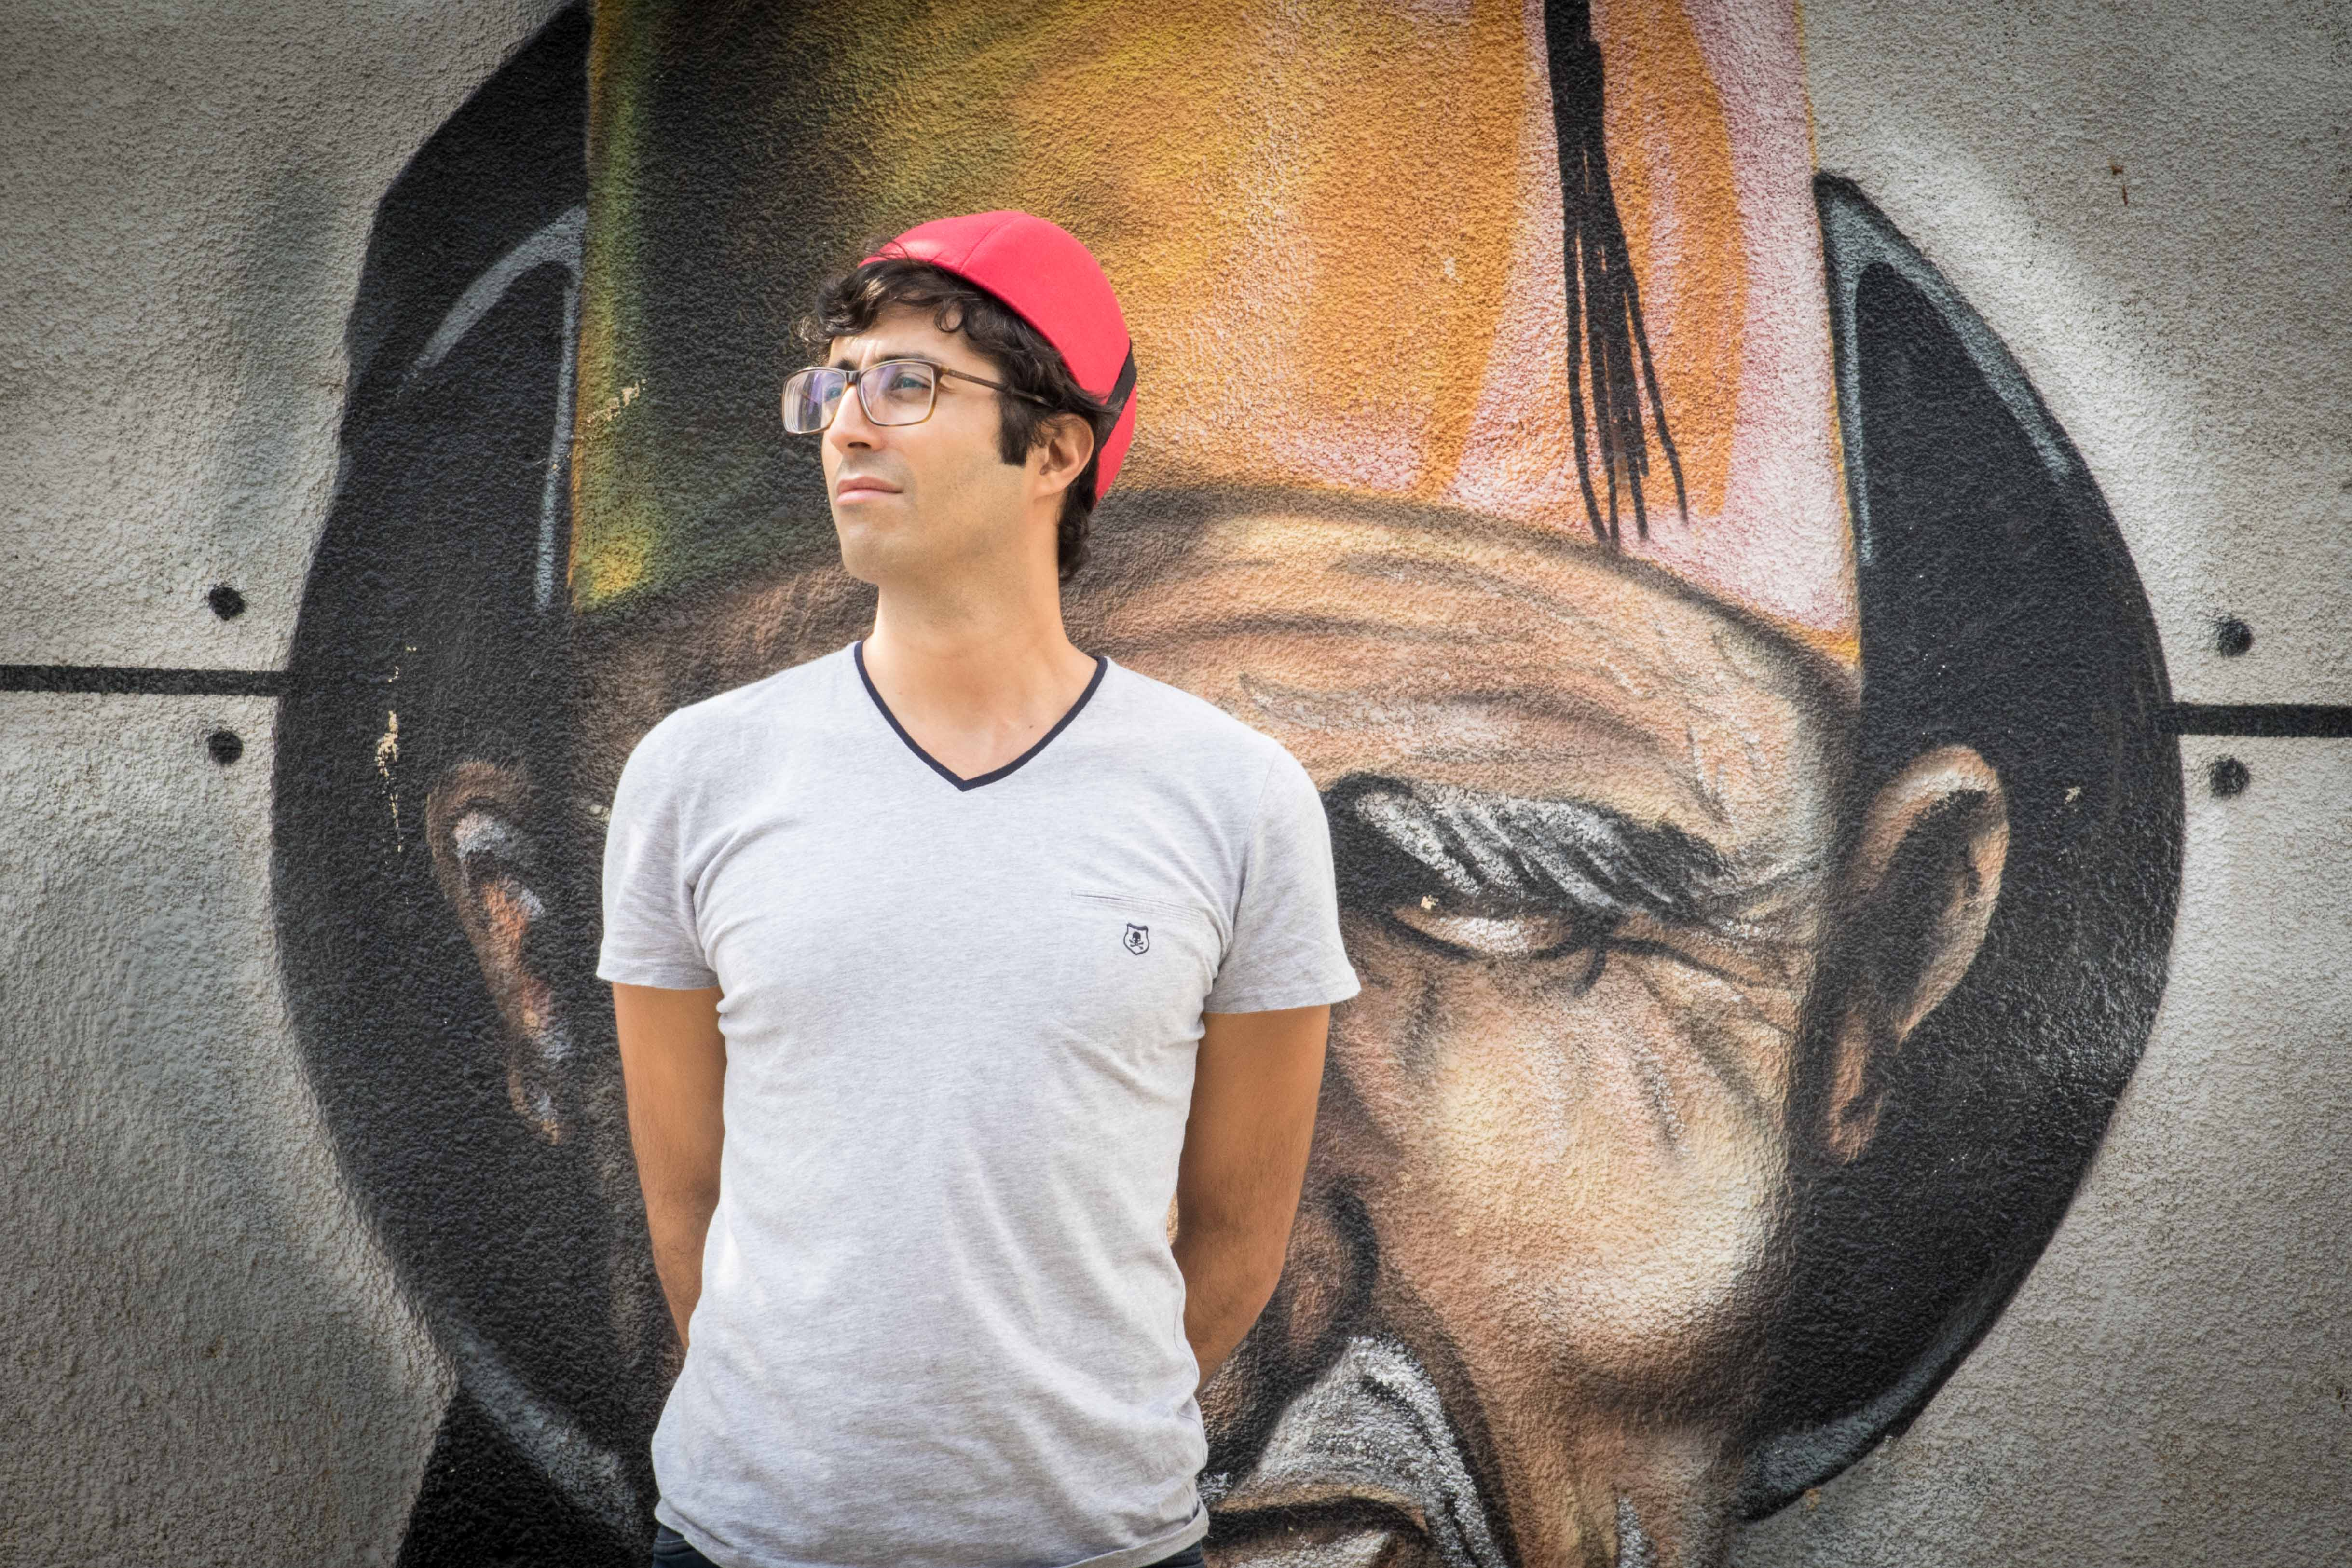 Beirut Entrepreneur Reinvents Iconic Hat for Modern Age